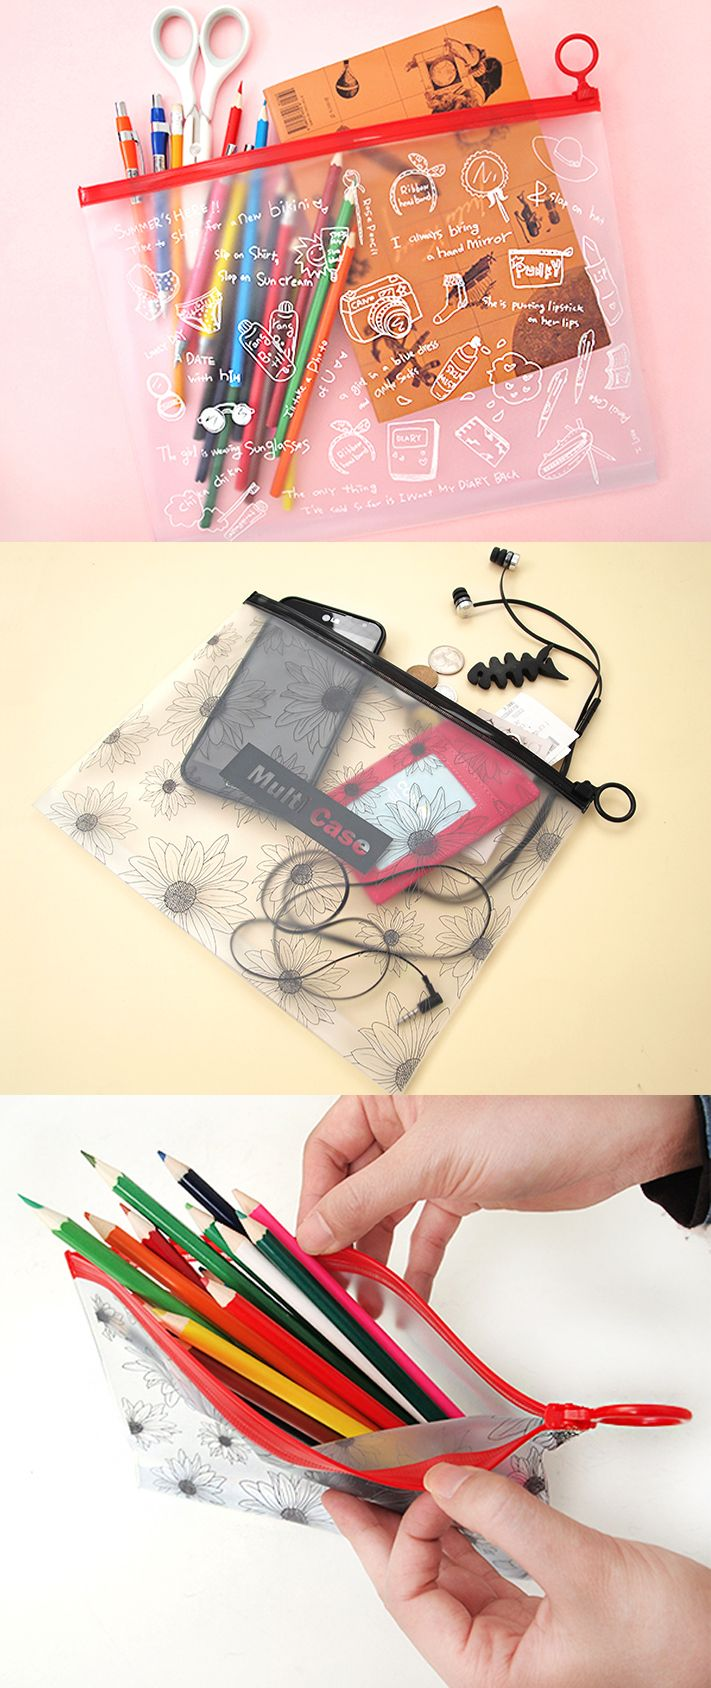 There isn't a more multifunctional pouch than the Vivid PVC Pouch. Its translucent design lets you see what's inside, so it's great for pens, stationery, craft supplies, devices, gadgets, and so much more!